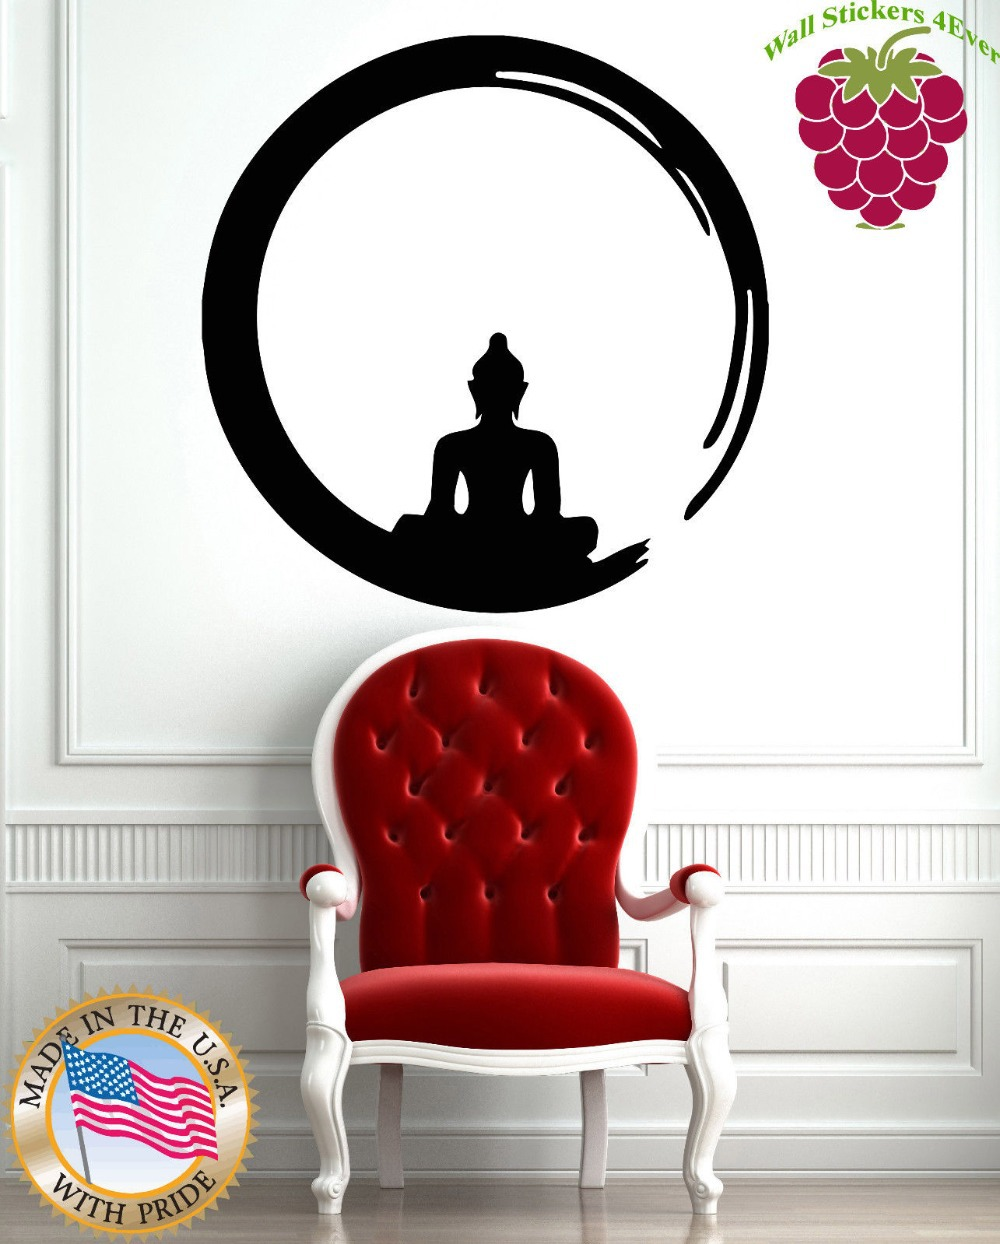 Wall stickers vinyl decal buddha zen meditation mantra yoga enso wall stickers vinyl decal buddha zen meditation mantra yoga enso circle in wall stickers from home garden on aliexpress alibaba group amipublicfo Gallery